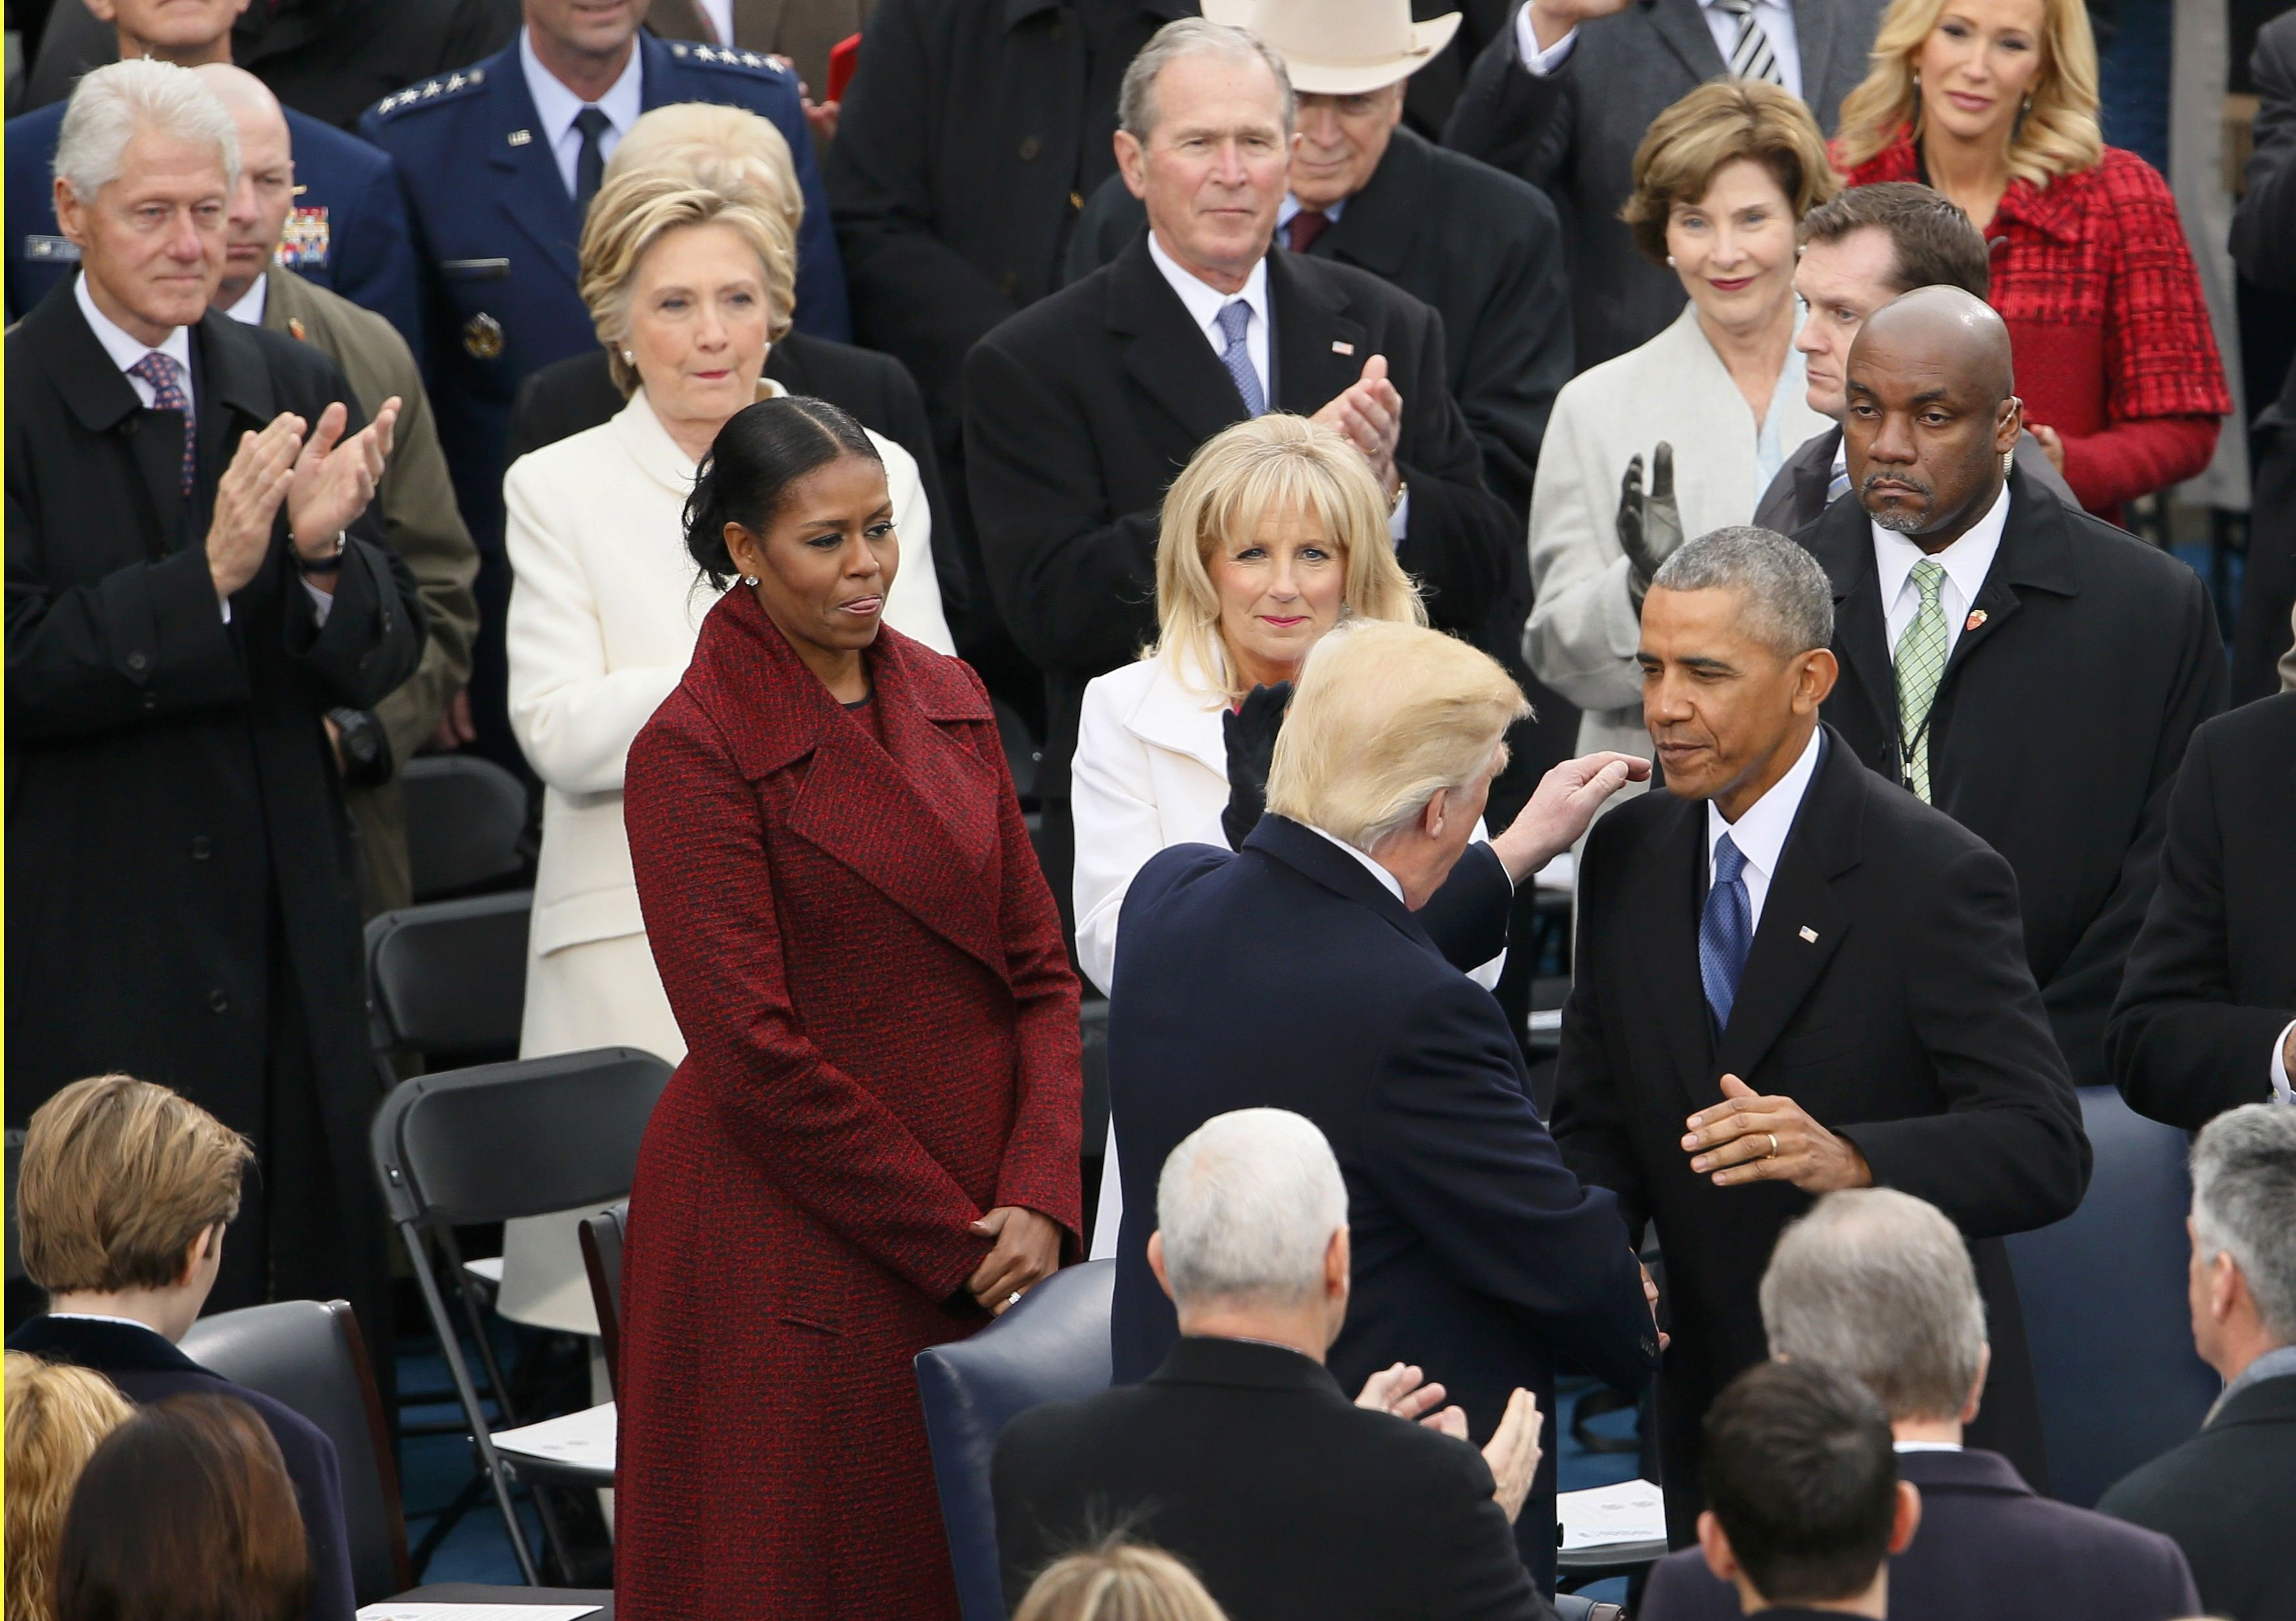 President Obama greets President-elect Donald Trump as former president Bill Clinton, his wife Hillary, and former President George W Bush and his wife Laura look on at the inauguration ceremonies swearing in Donald Trump as the 45th president of the United States on the West front of the U.S. Capitol in Washington, U.S., January 20, 2017